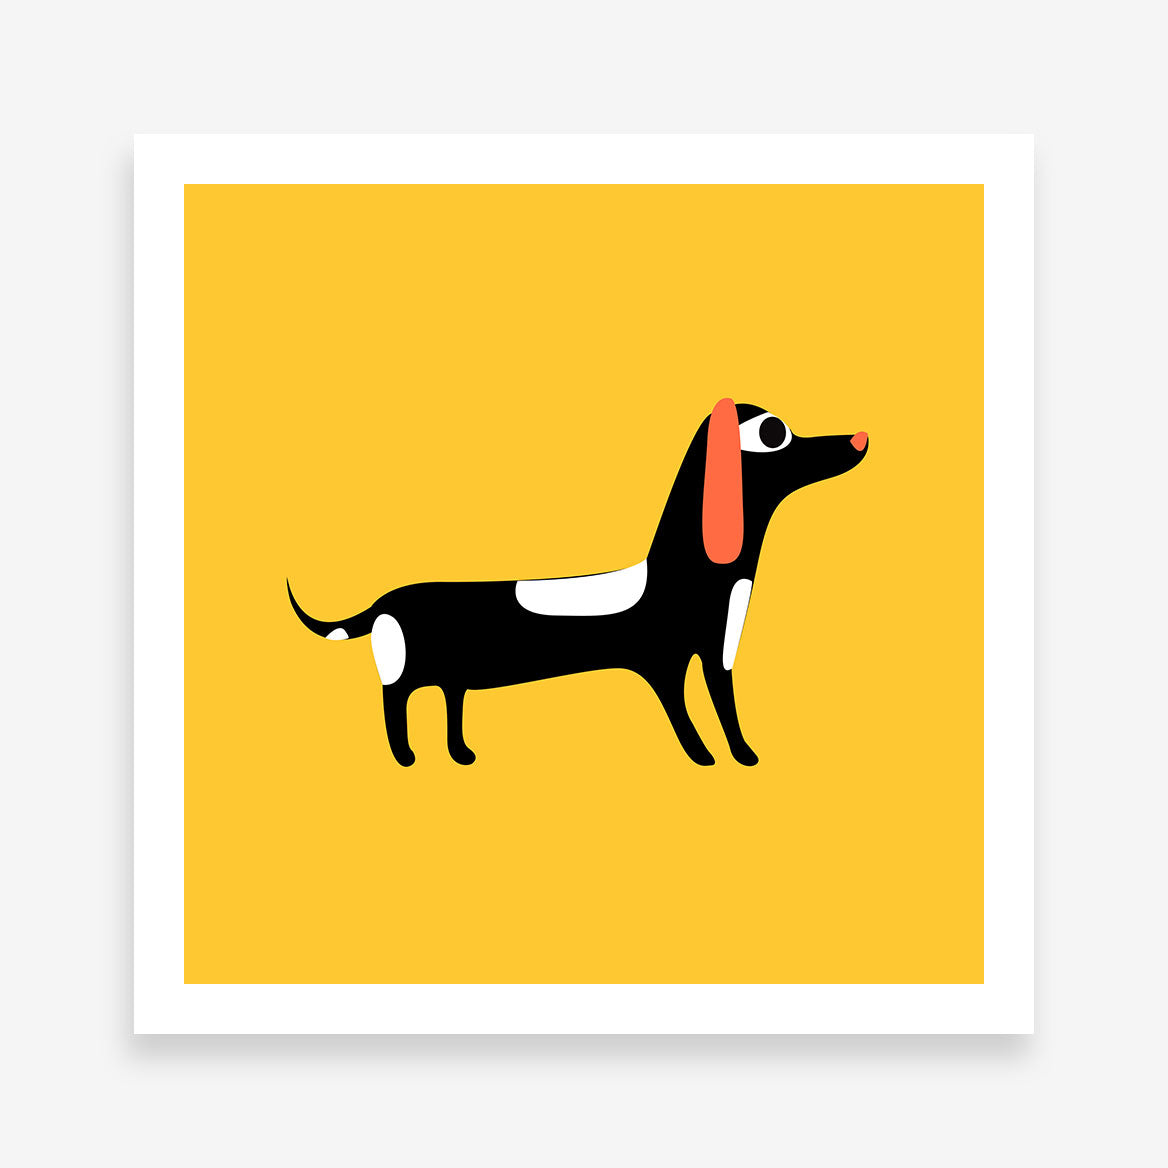 Square poster print with a dog on mustard background.